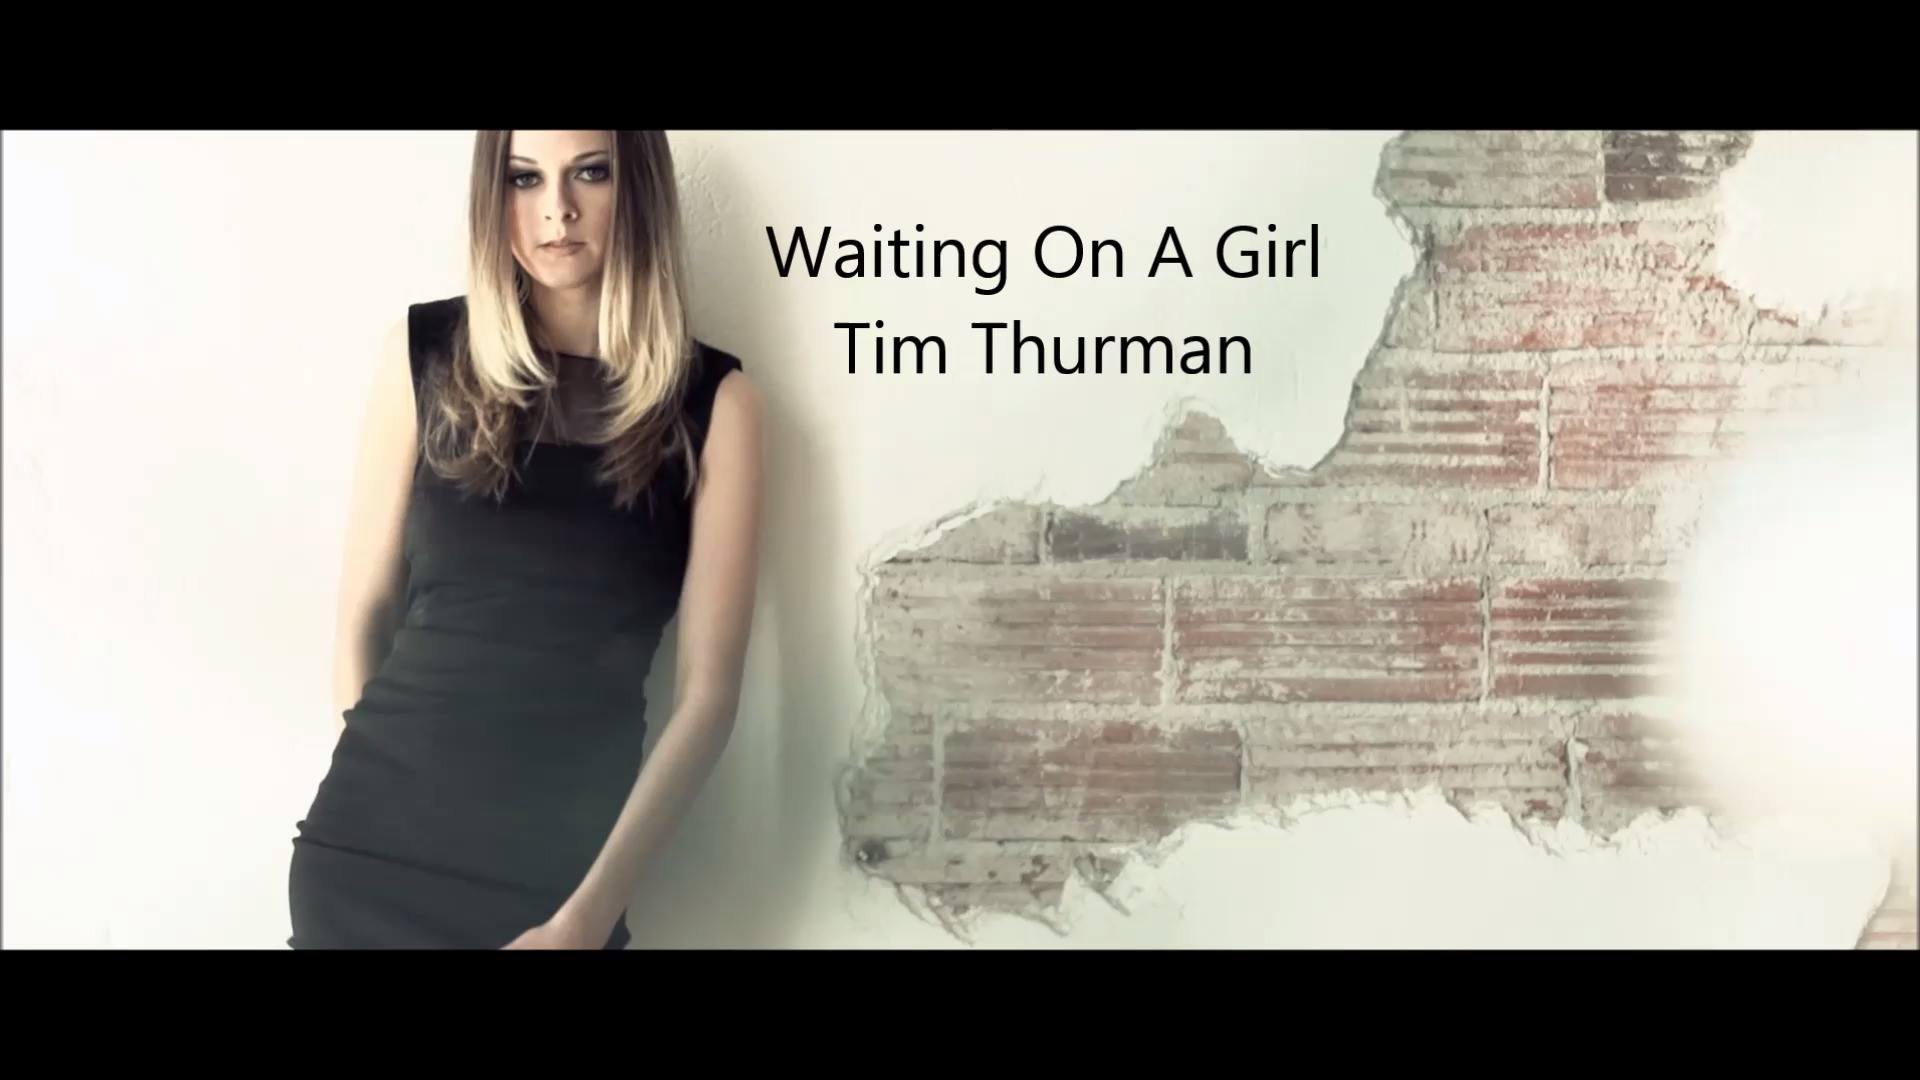 Waiting On A Girl - Tim Thurman